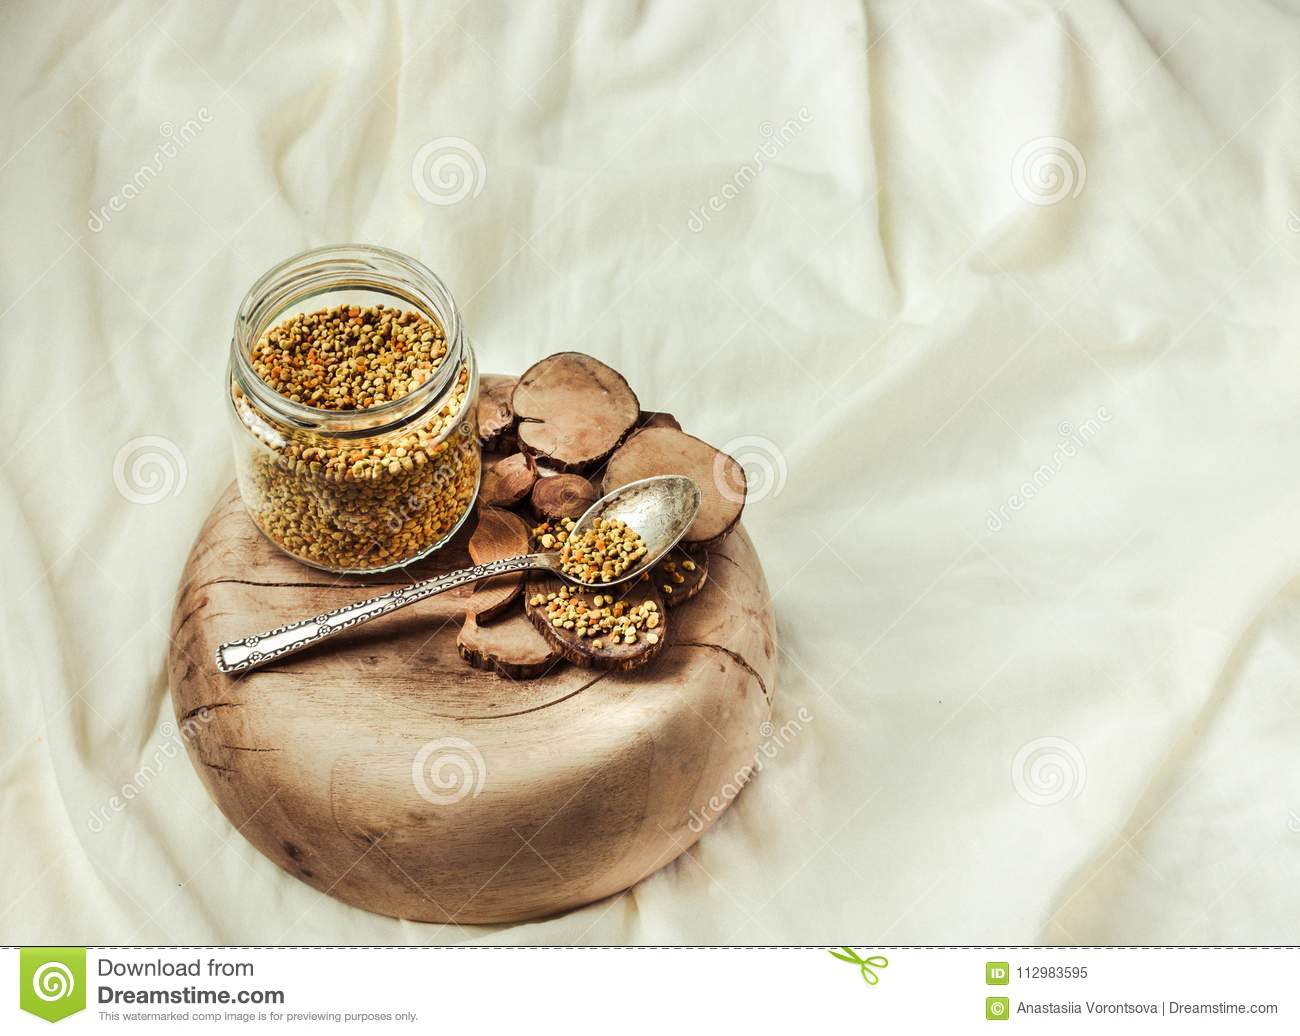 bee pollen in a jar on a wooden stand, white linen tablecloth.Place for text.Selective focus.